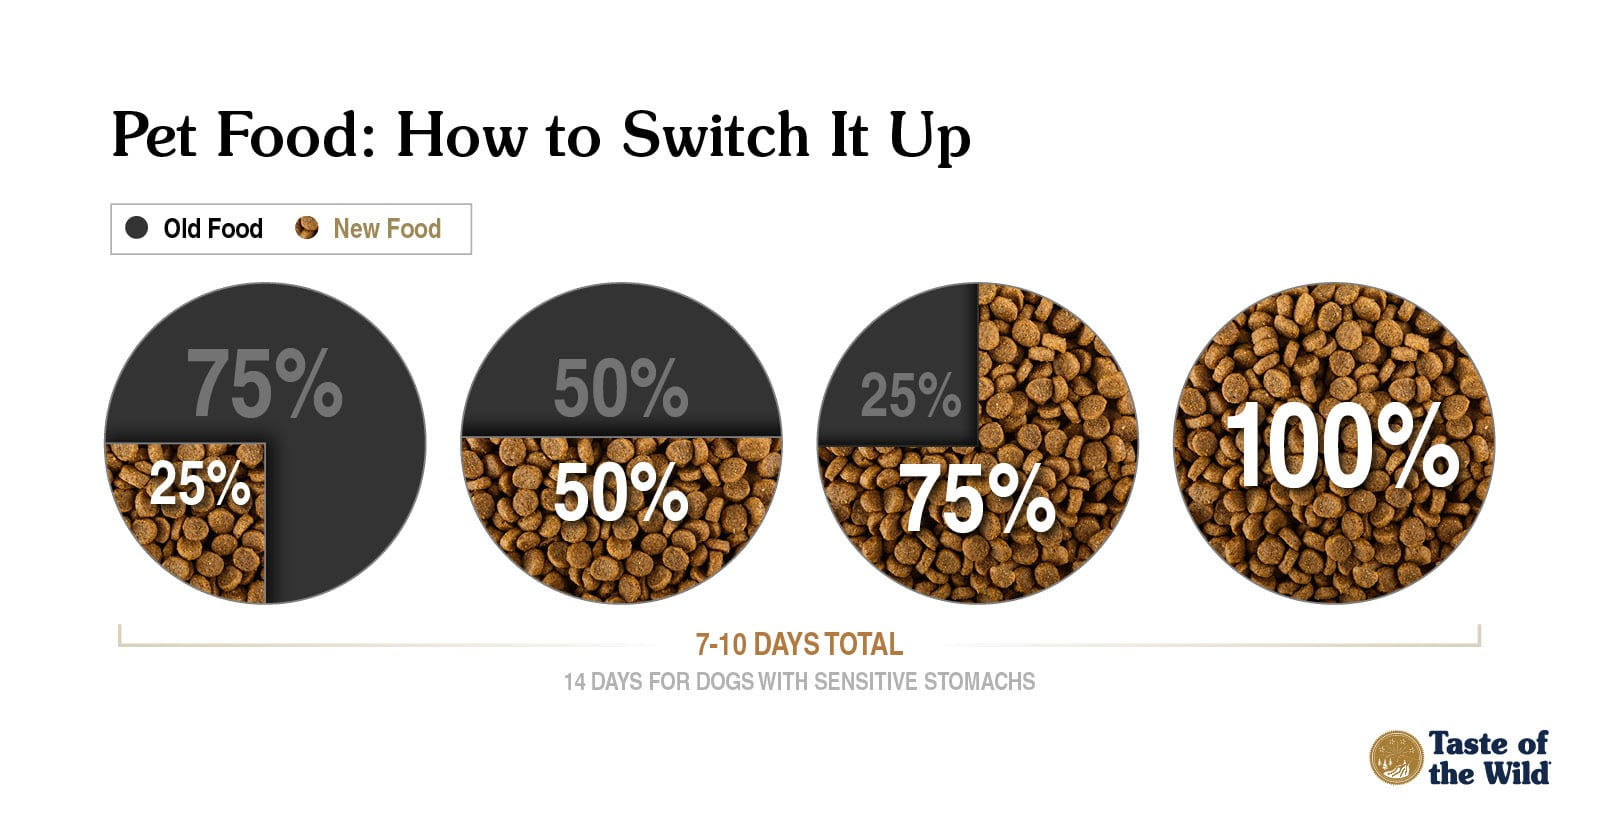 Pet Food: How to Switch Up Guide | Taste of the Wild